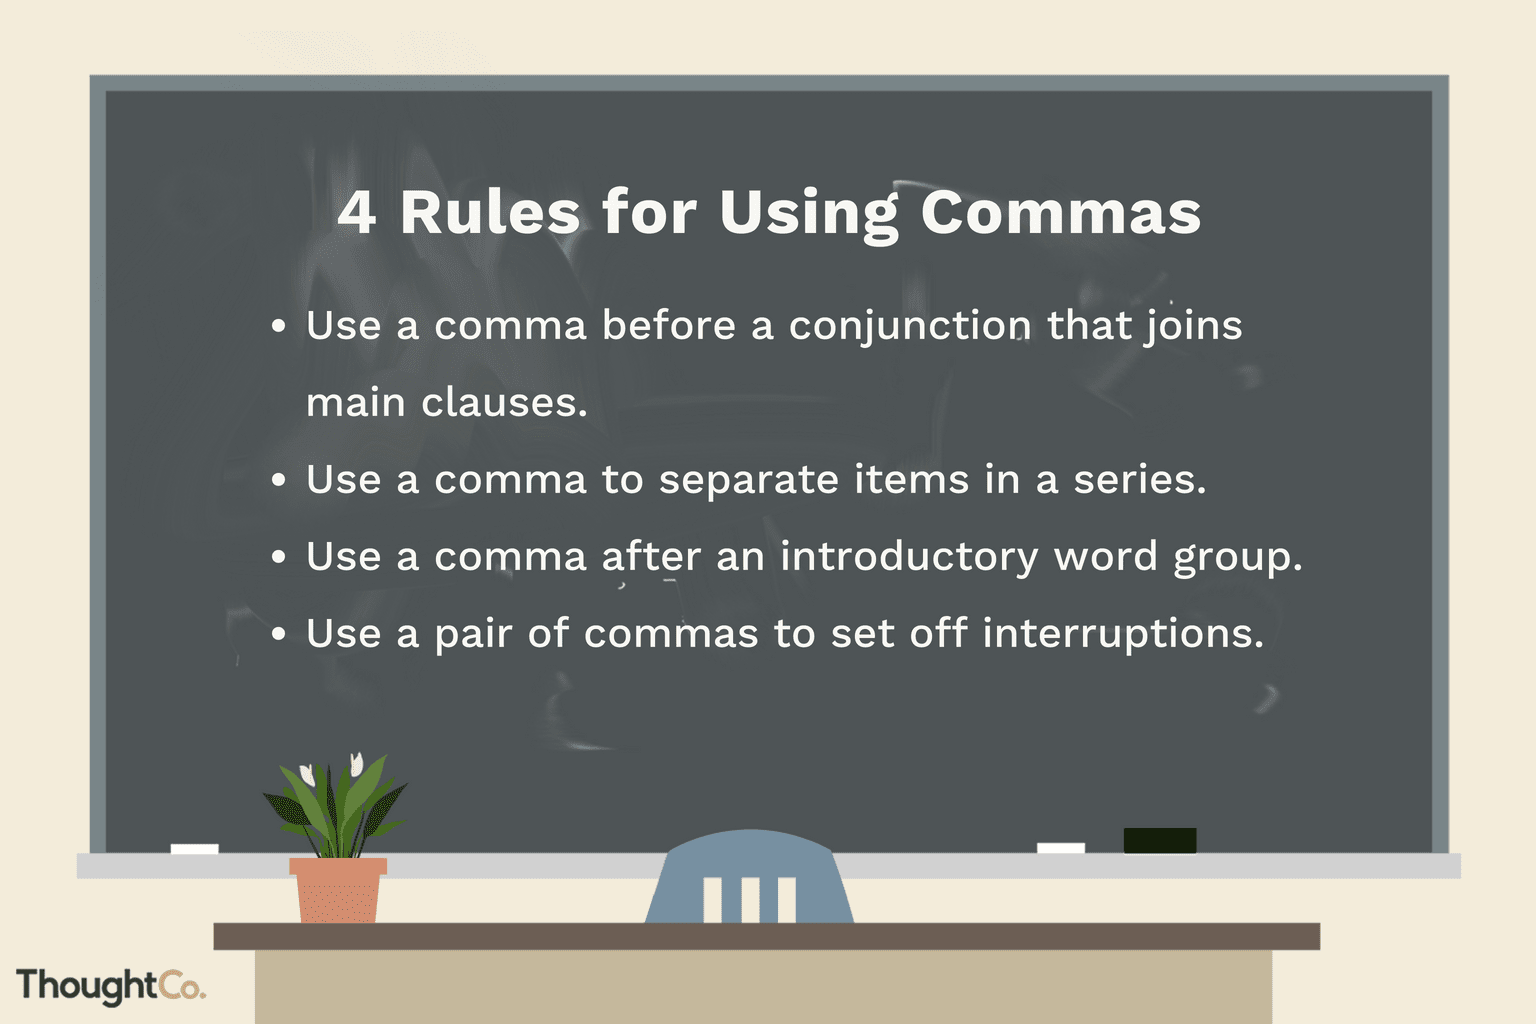 Top 4 Rules For Using Commas Effectively